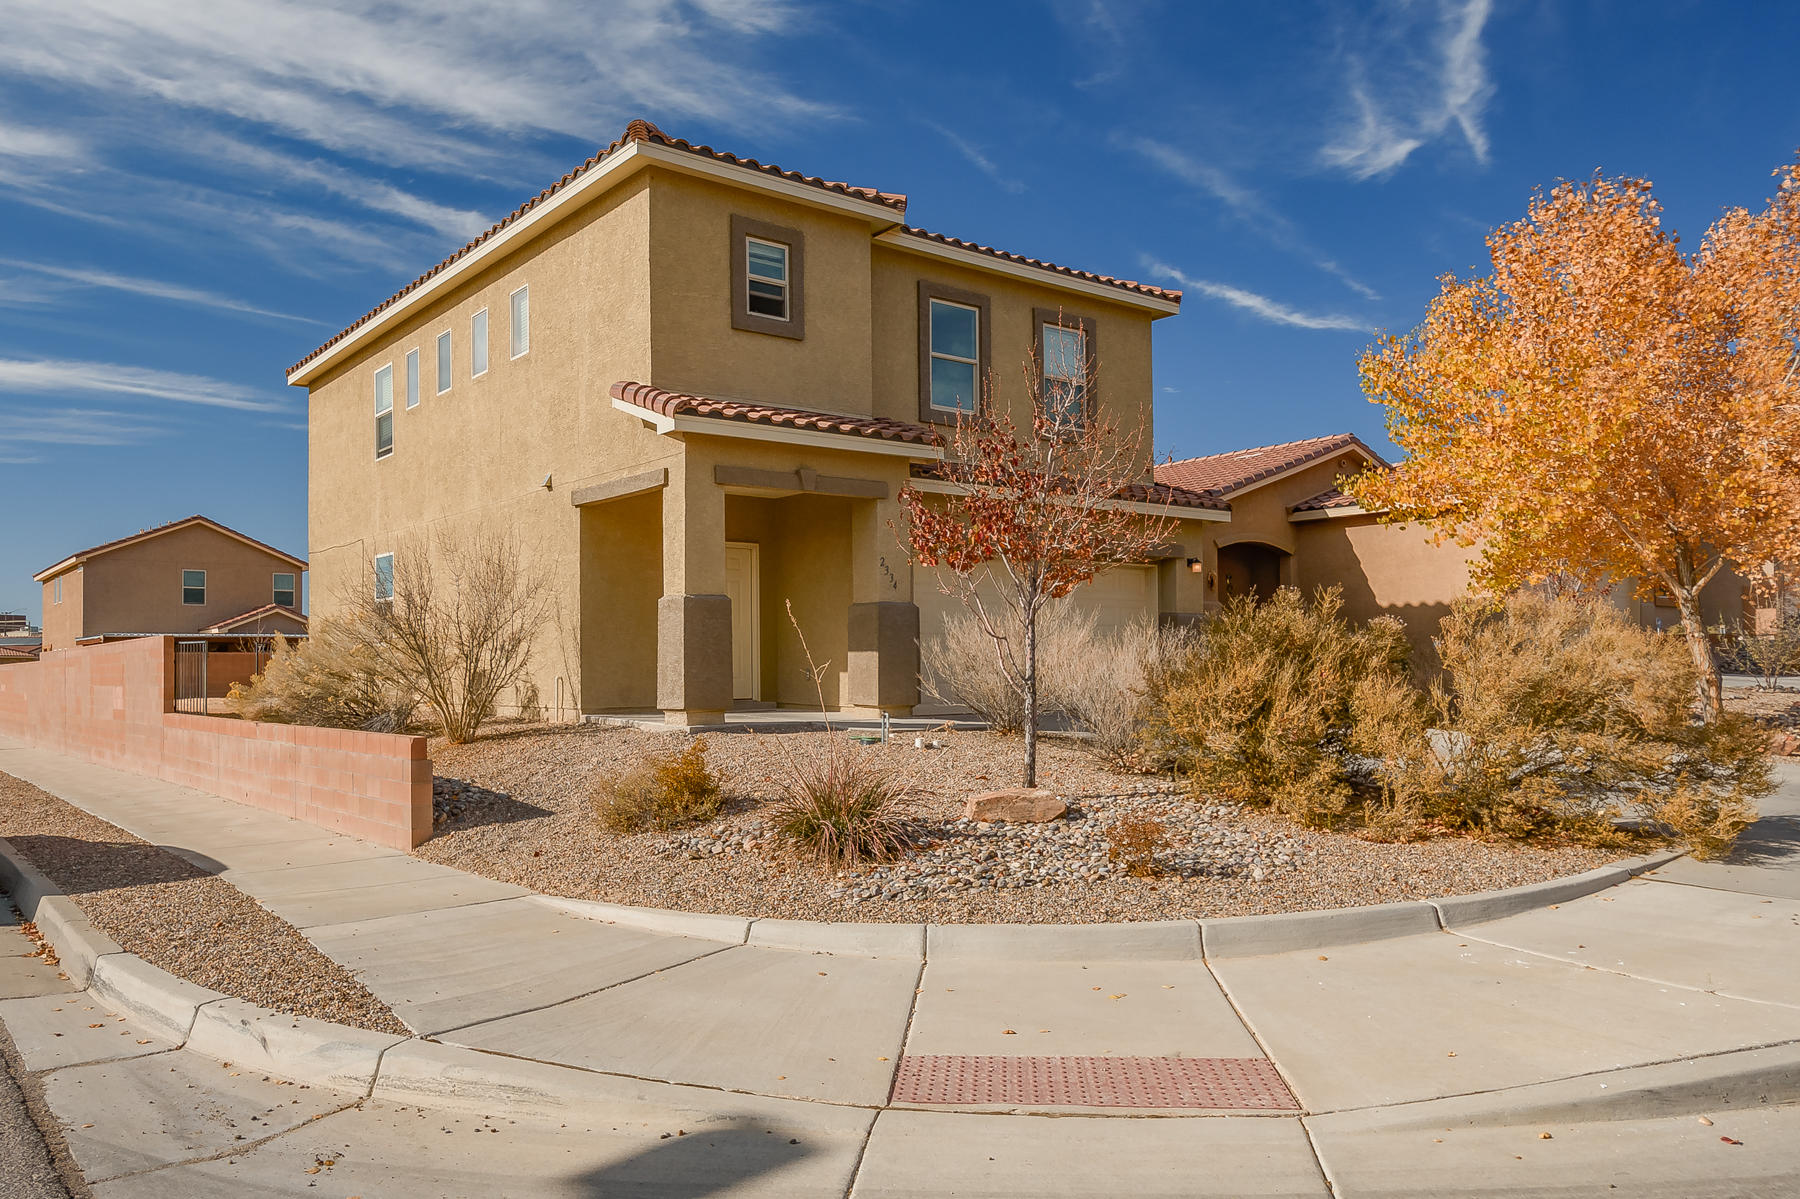 Nice home in Cabezon on a corner lot! This home features granite counter in the large, open concept kitchen. There is a breakfast nook, breakfast bar and pantry! Lots of natural light with south facing windows! Large living room, clearstory windows, recessed lighting, lots of storage throughout the home. Master suite is a nice sized, with dual closets, dual sinks, garden tub and separate shower. The seller is giving a flooring allowance for new owner to replace flooring with an acceptable offer!!